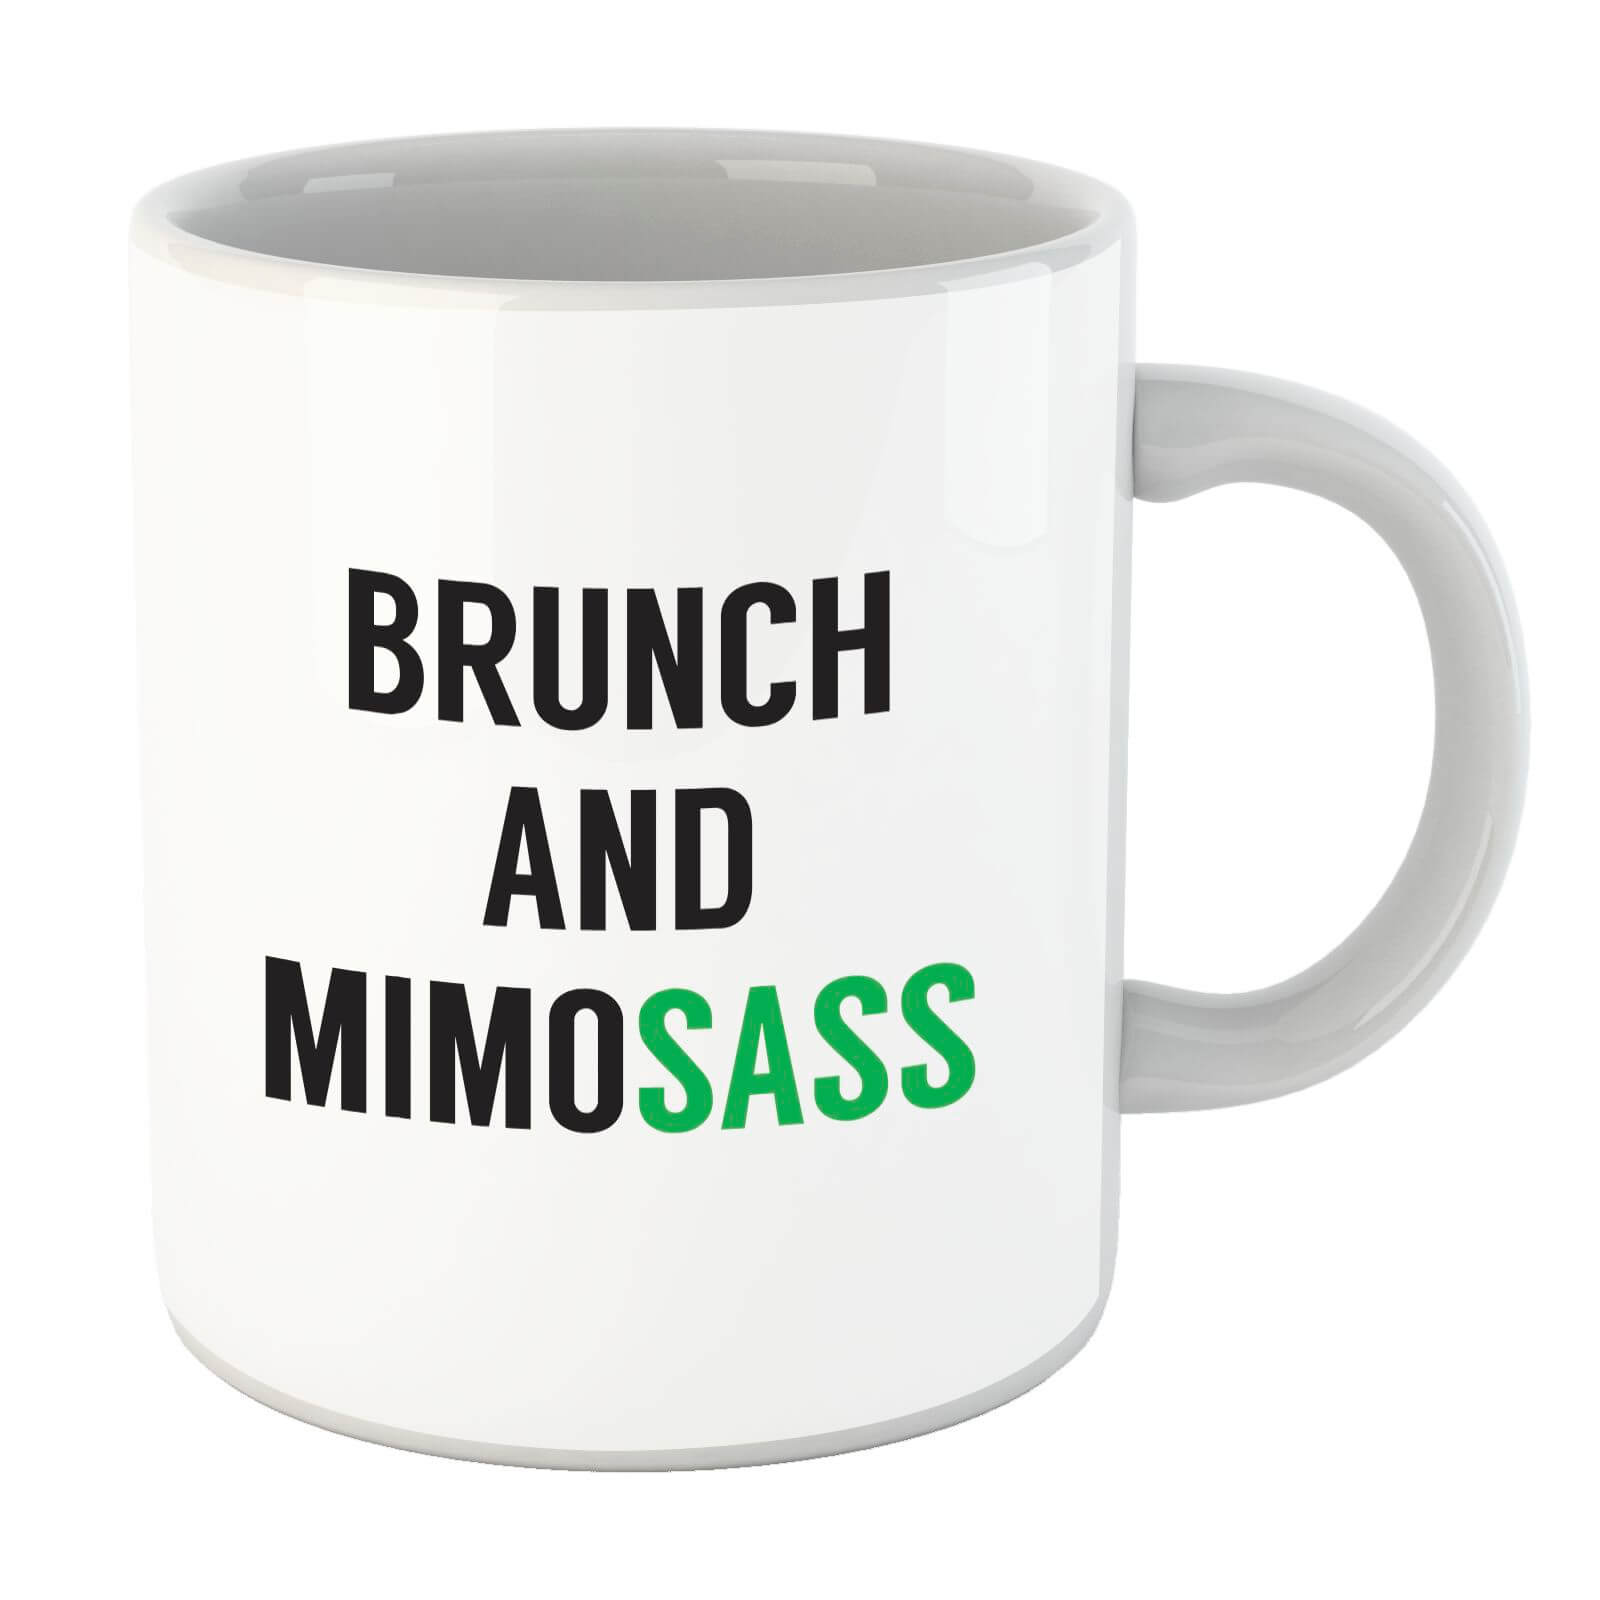 Brunch And Mimosass Mug